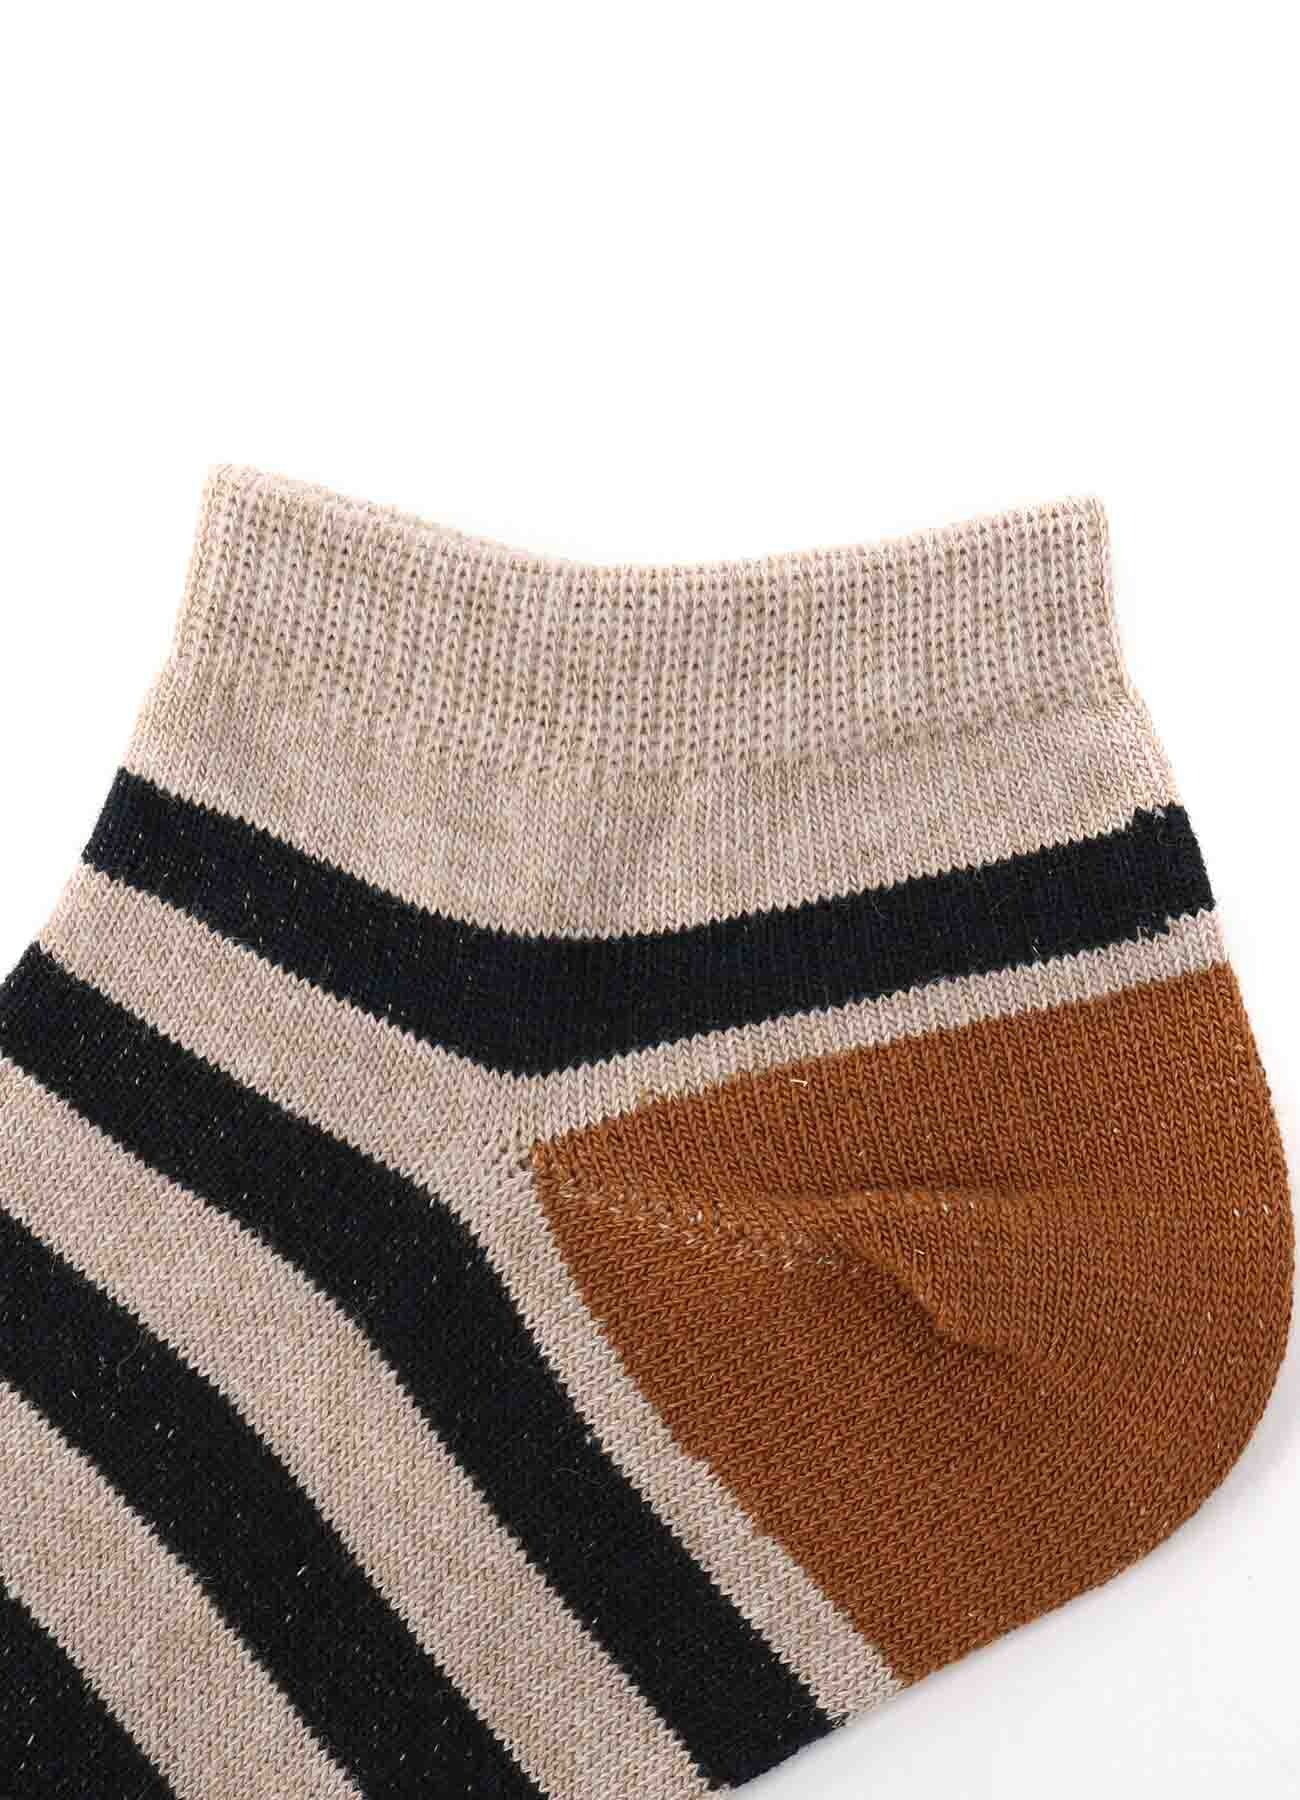 BORDER PS ANKLE SOCKS